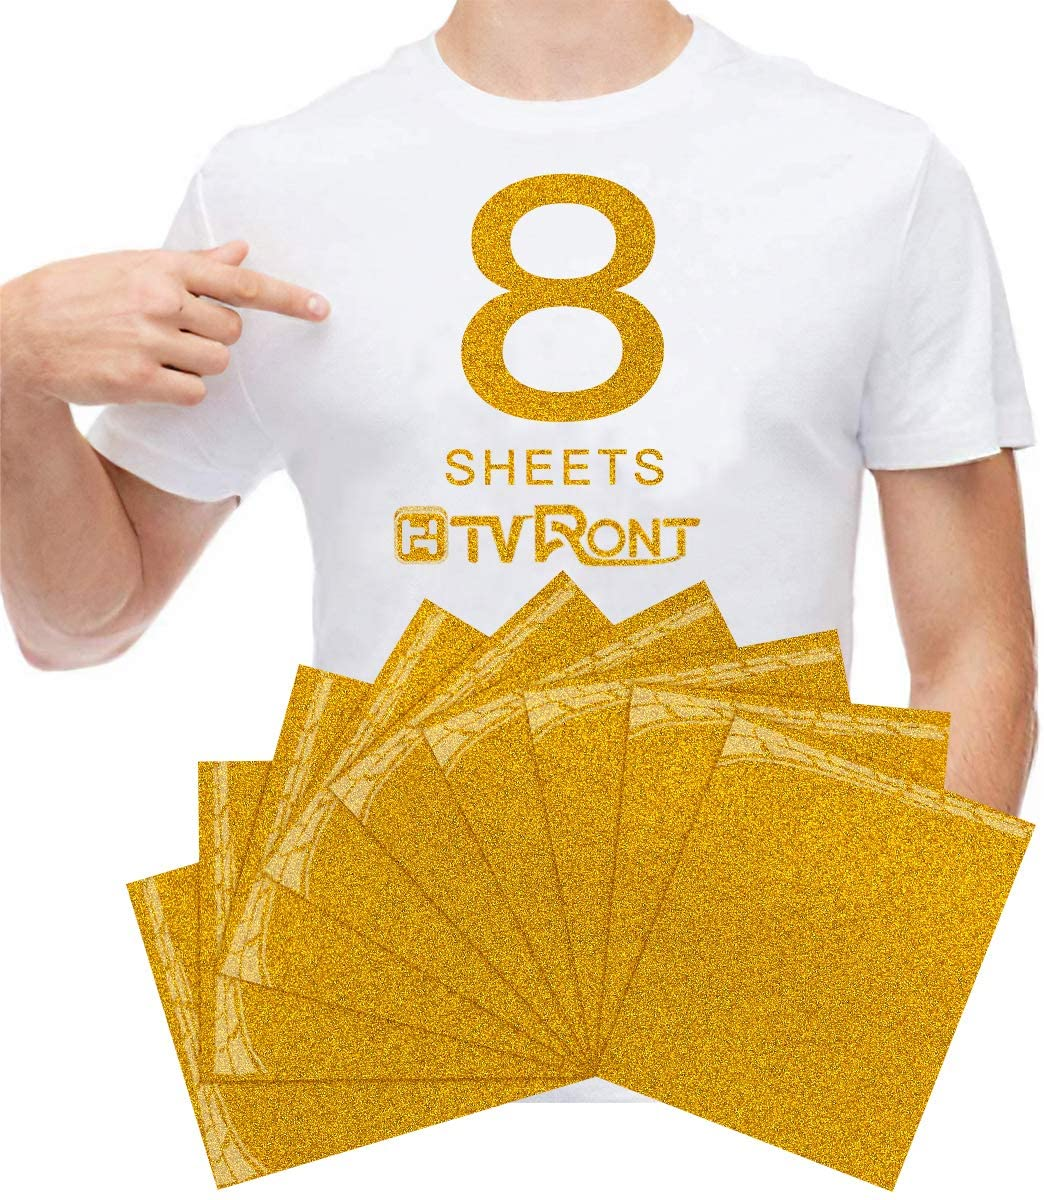 Gold Glitter Heat Transfer Vinyl HTV - 8 Sheets 12in x 10in Gold Iron On Glitter HTV Vinyl for Cricut & Silhouette Cameo, Easy to Cut & Press